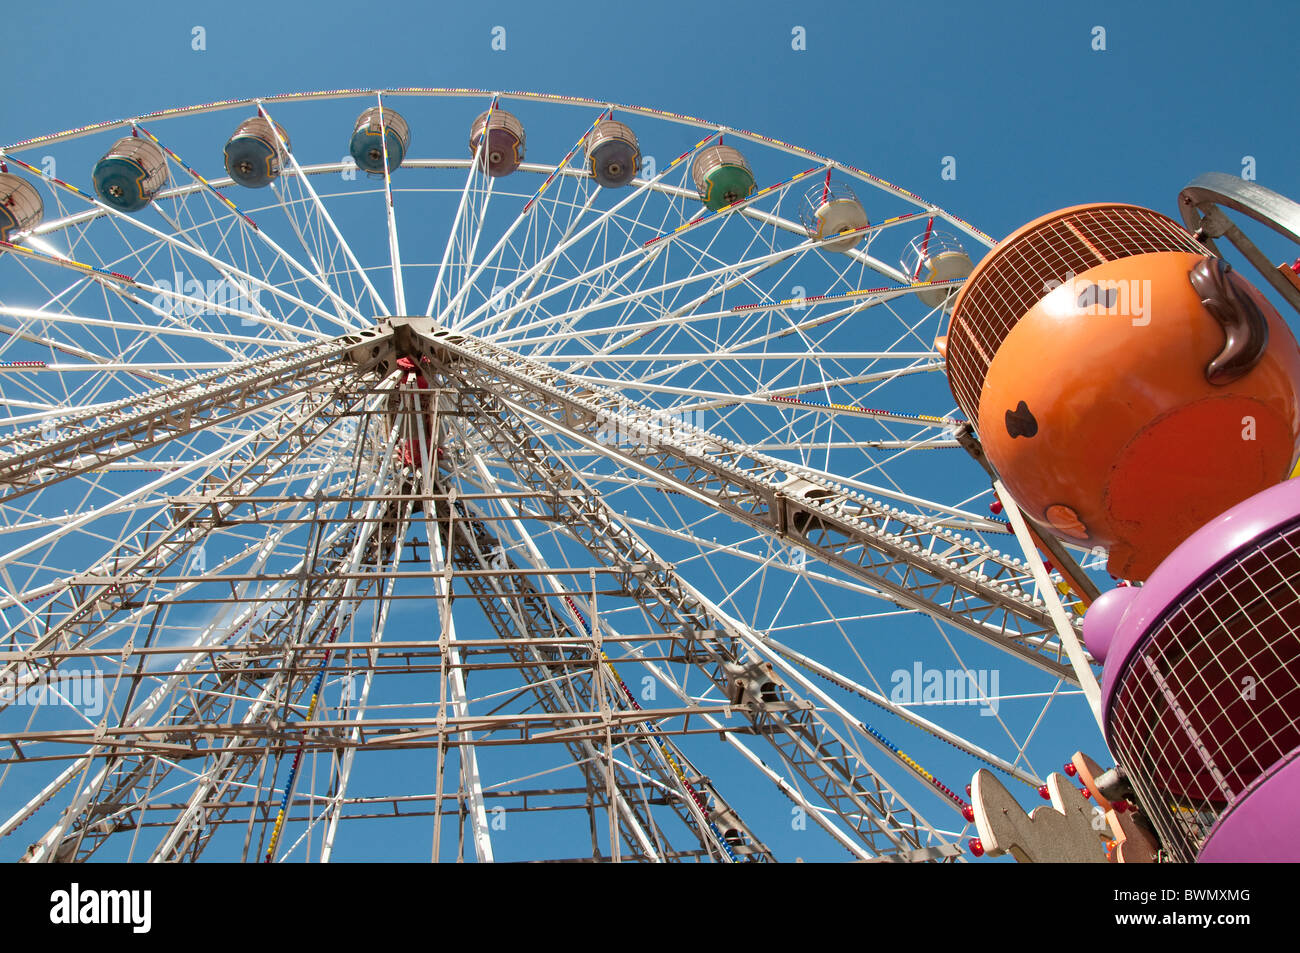 Ferris wheel on the Central Pier in Blackpool on the coast of Lancashire in Northern England - Stock Image